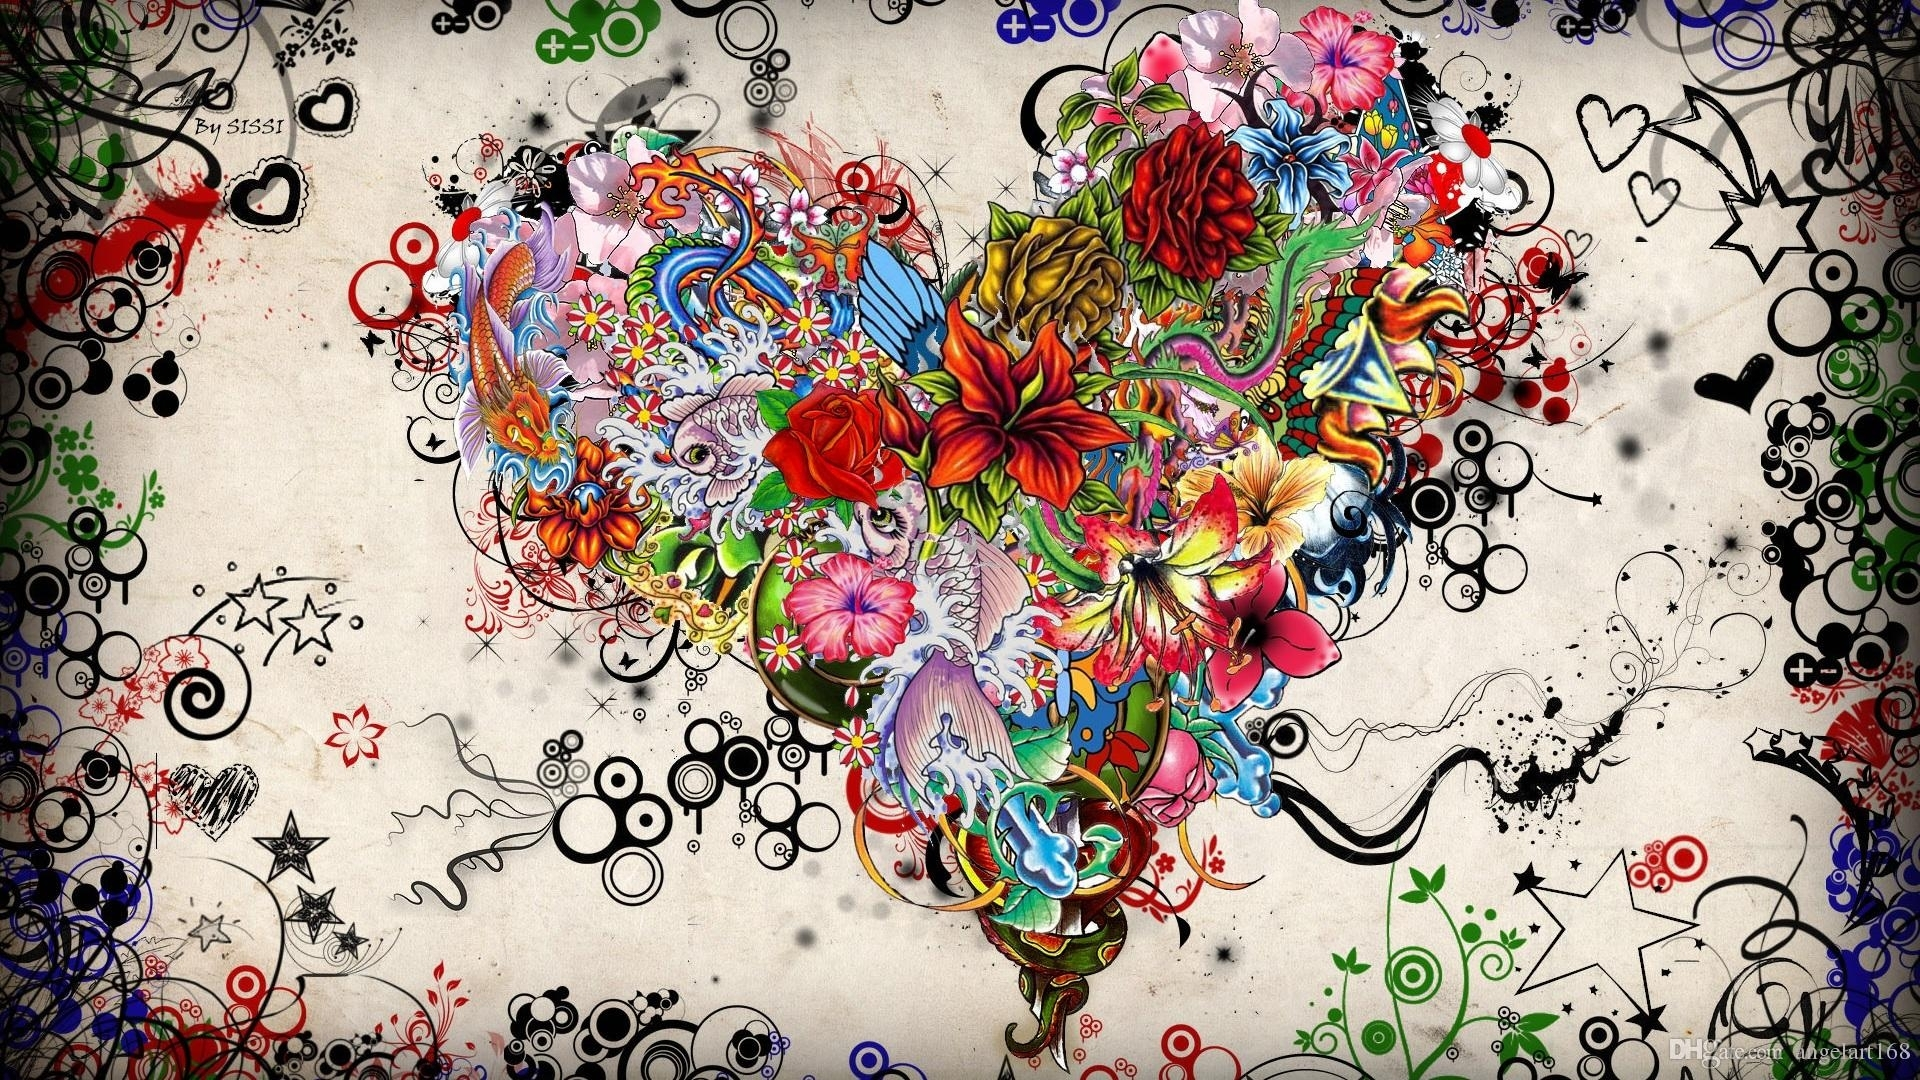 2018 Single Unframed Colourful Flower Abstract Heart Flower Regarding 2017 Abstract Graphic Wall Art (View 17 of 20)